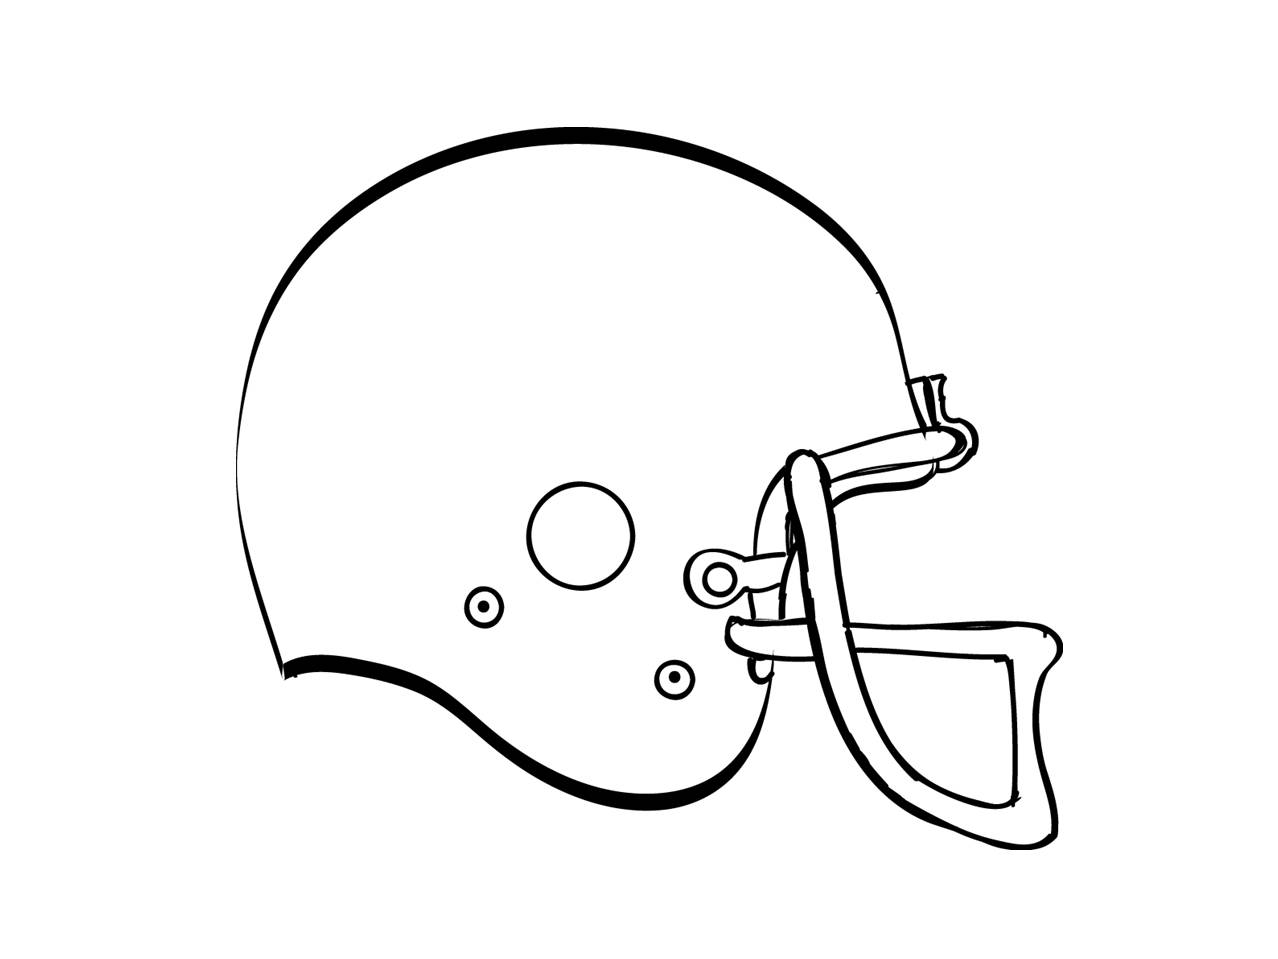 1278x959 College Football Helmet Coloring Pages